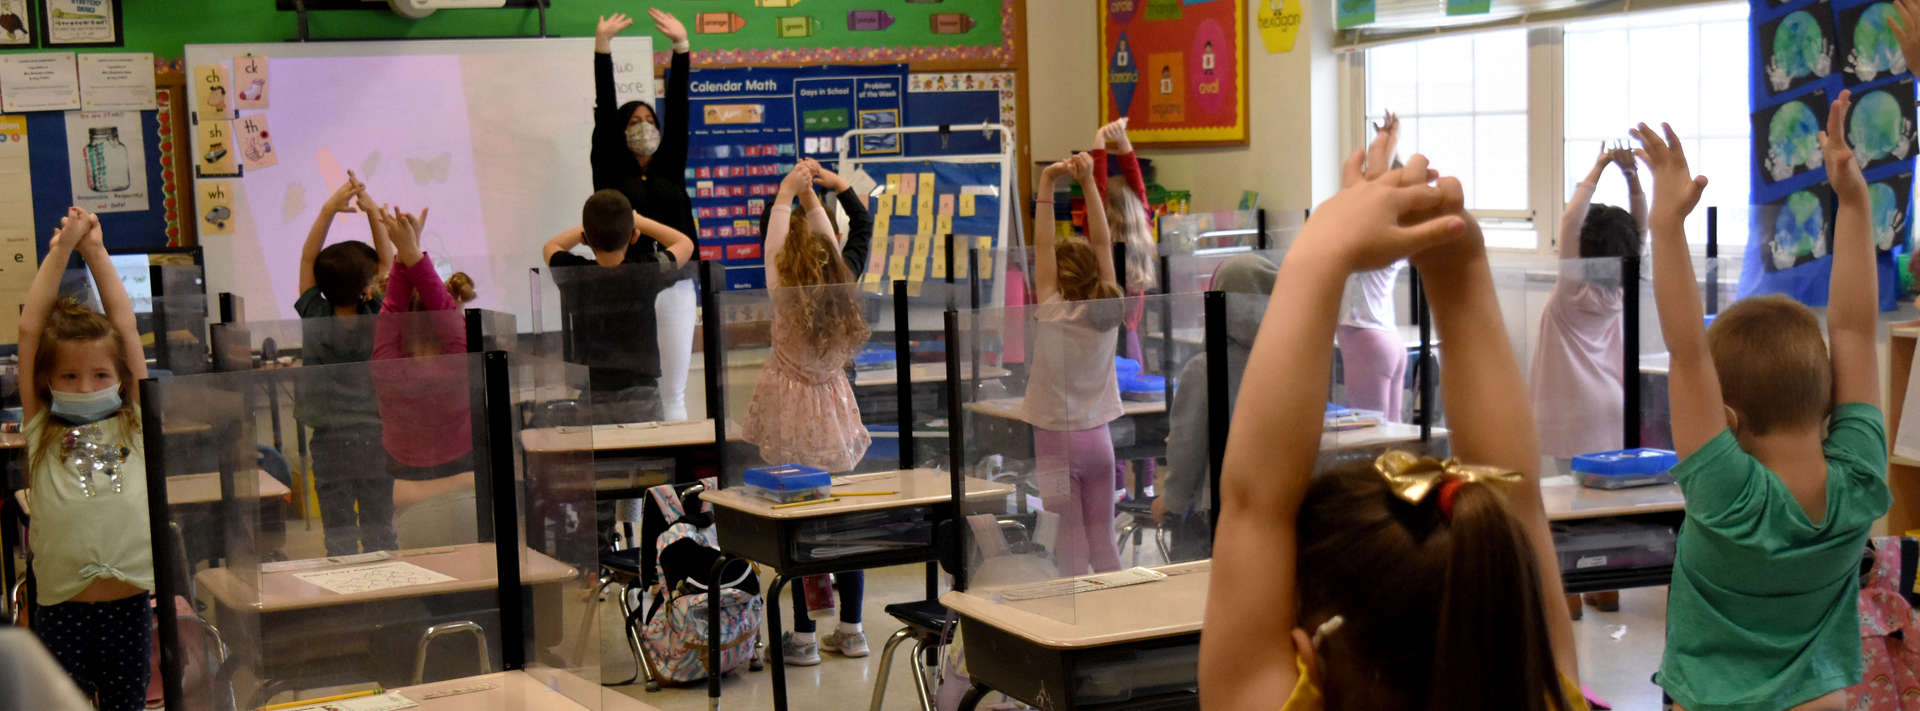 Teacher leading students in class stretching their arms above head